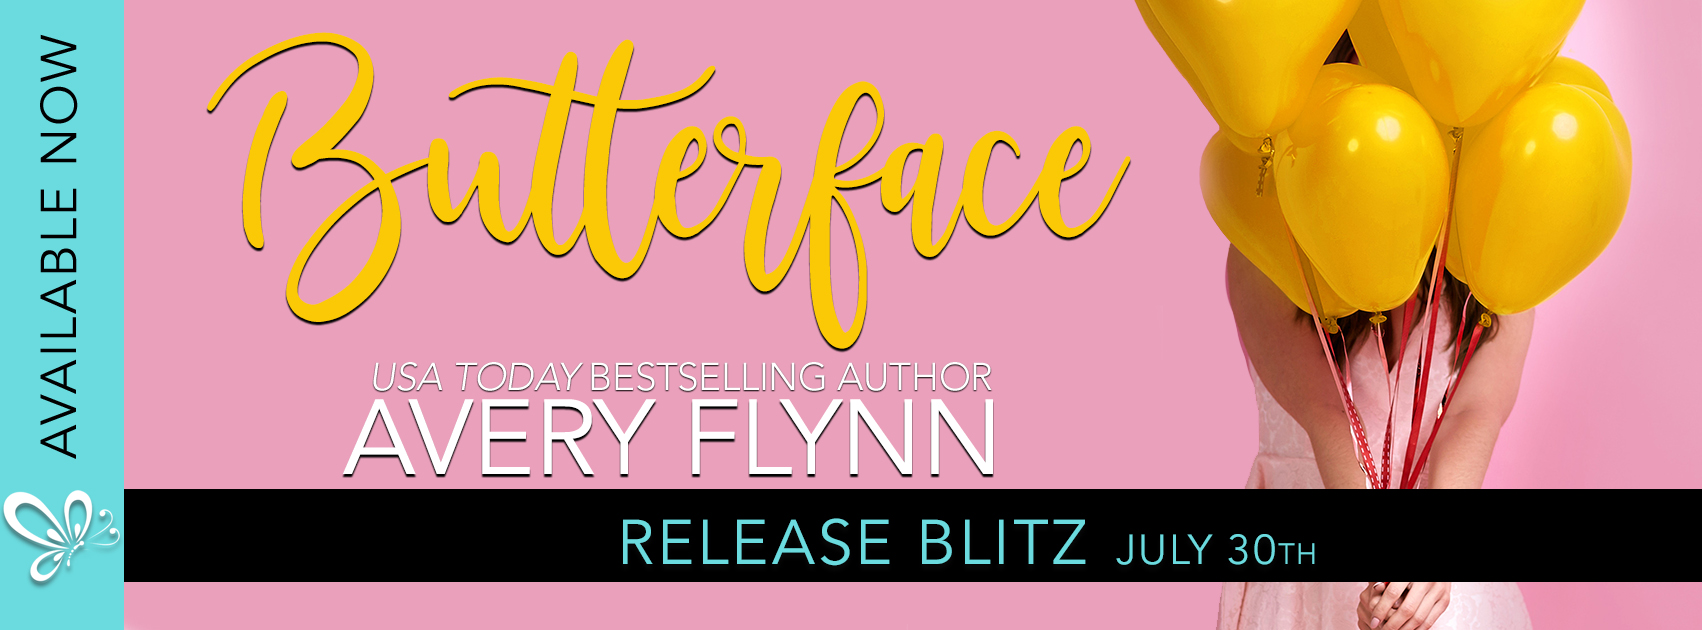 BUTTERFACE_RELEASE BLITZ